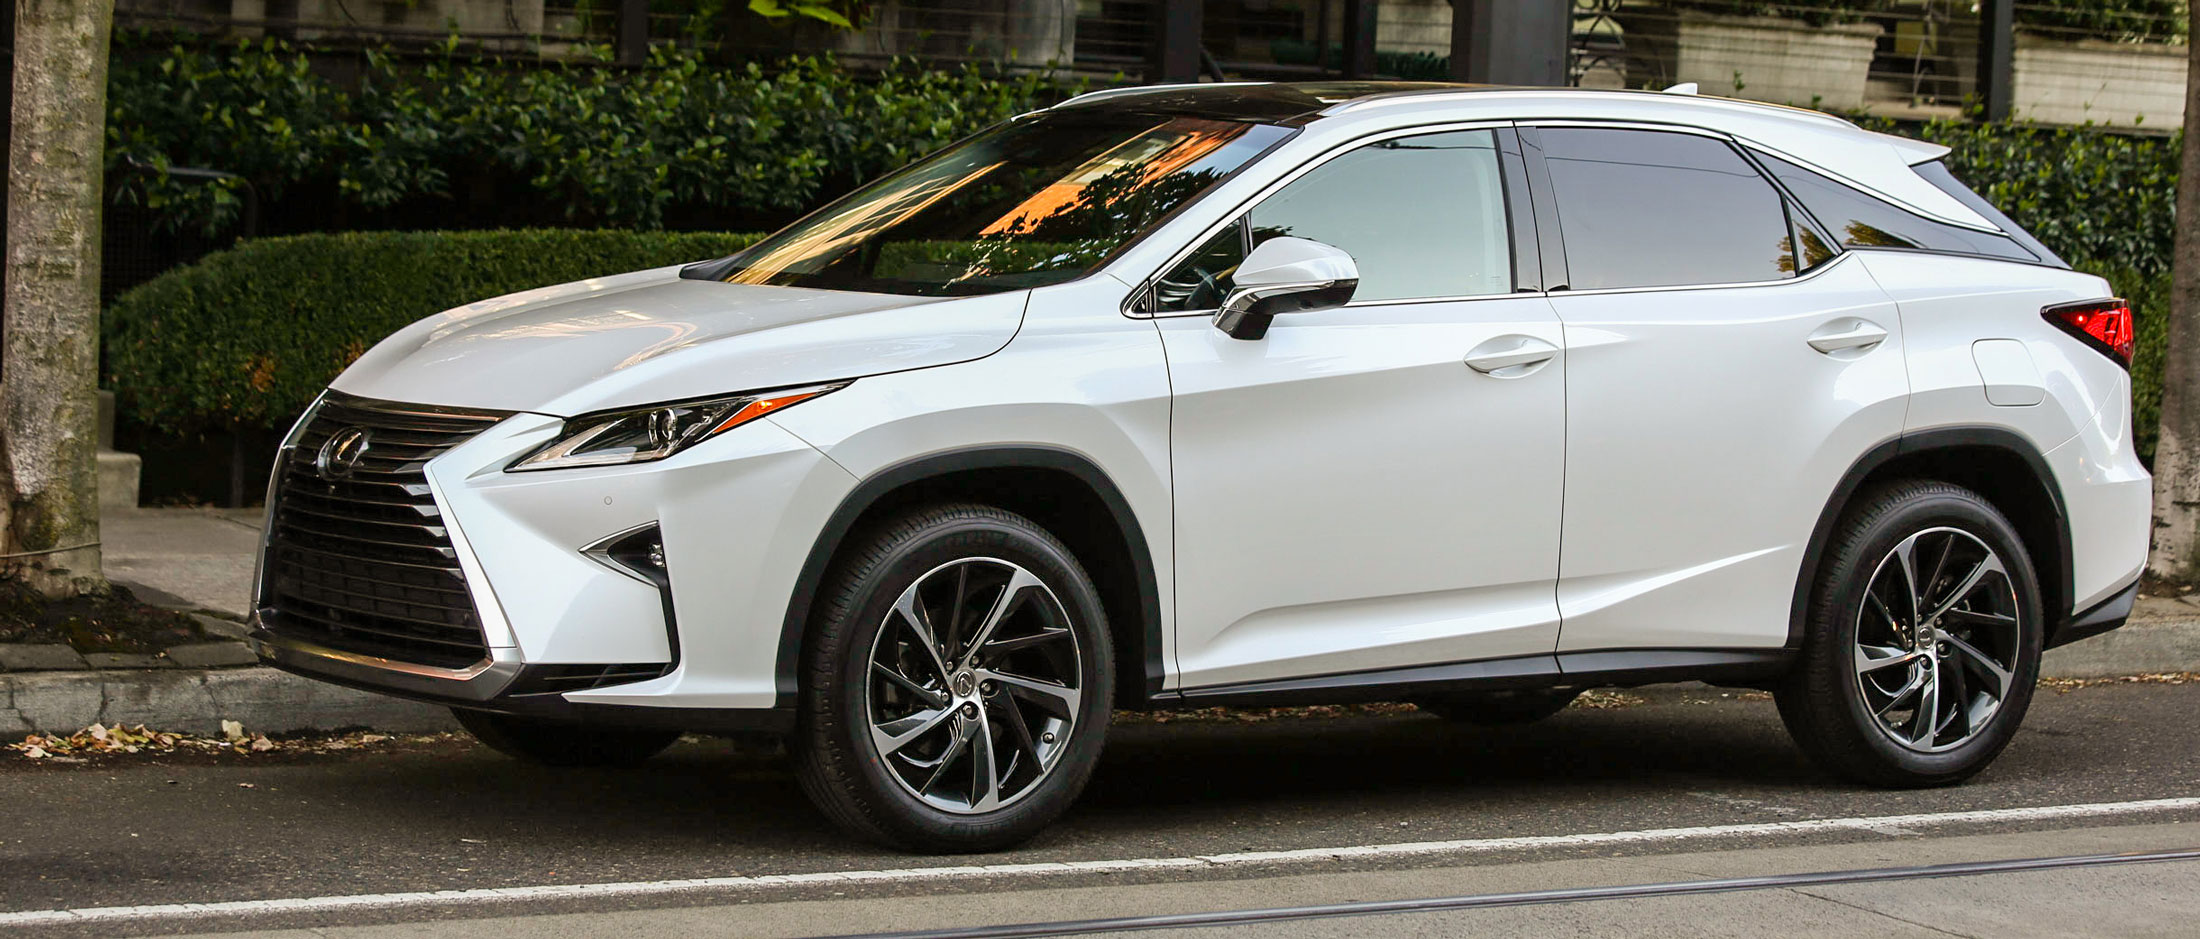 2016 Lexus RX 350 F Sport Review: The Ur Crossover, Overworked   Bloomberg